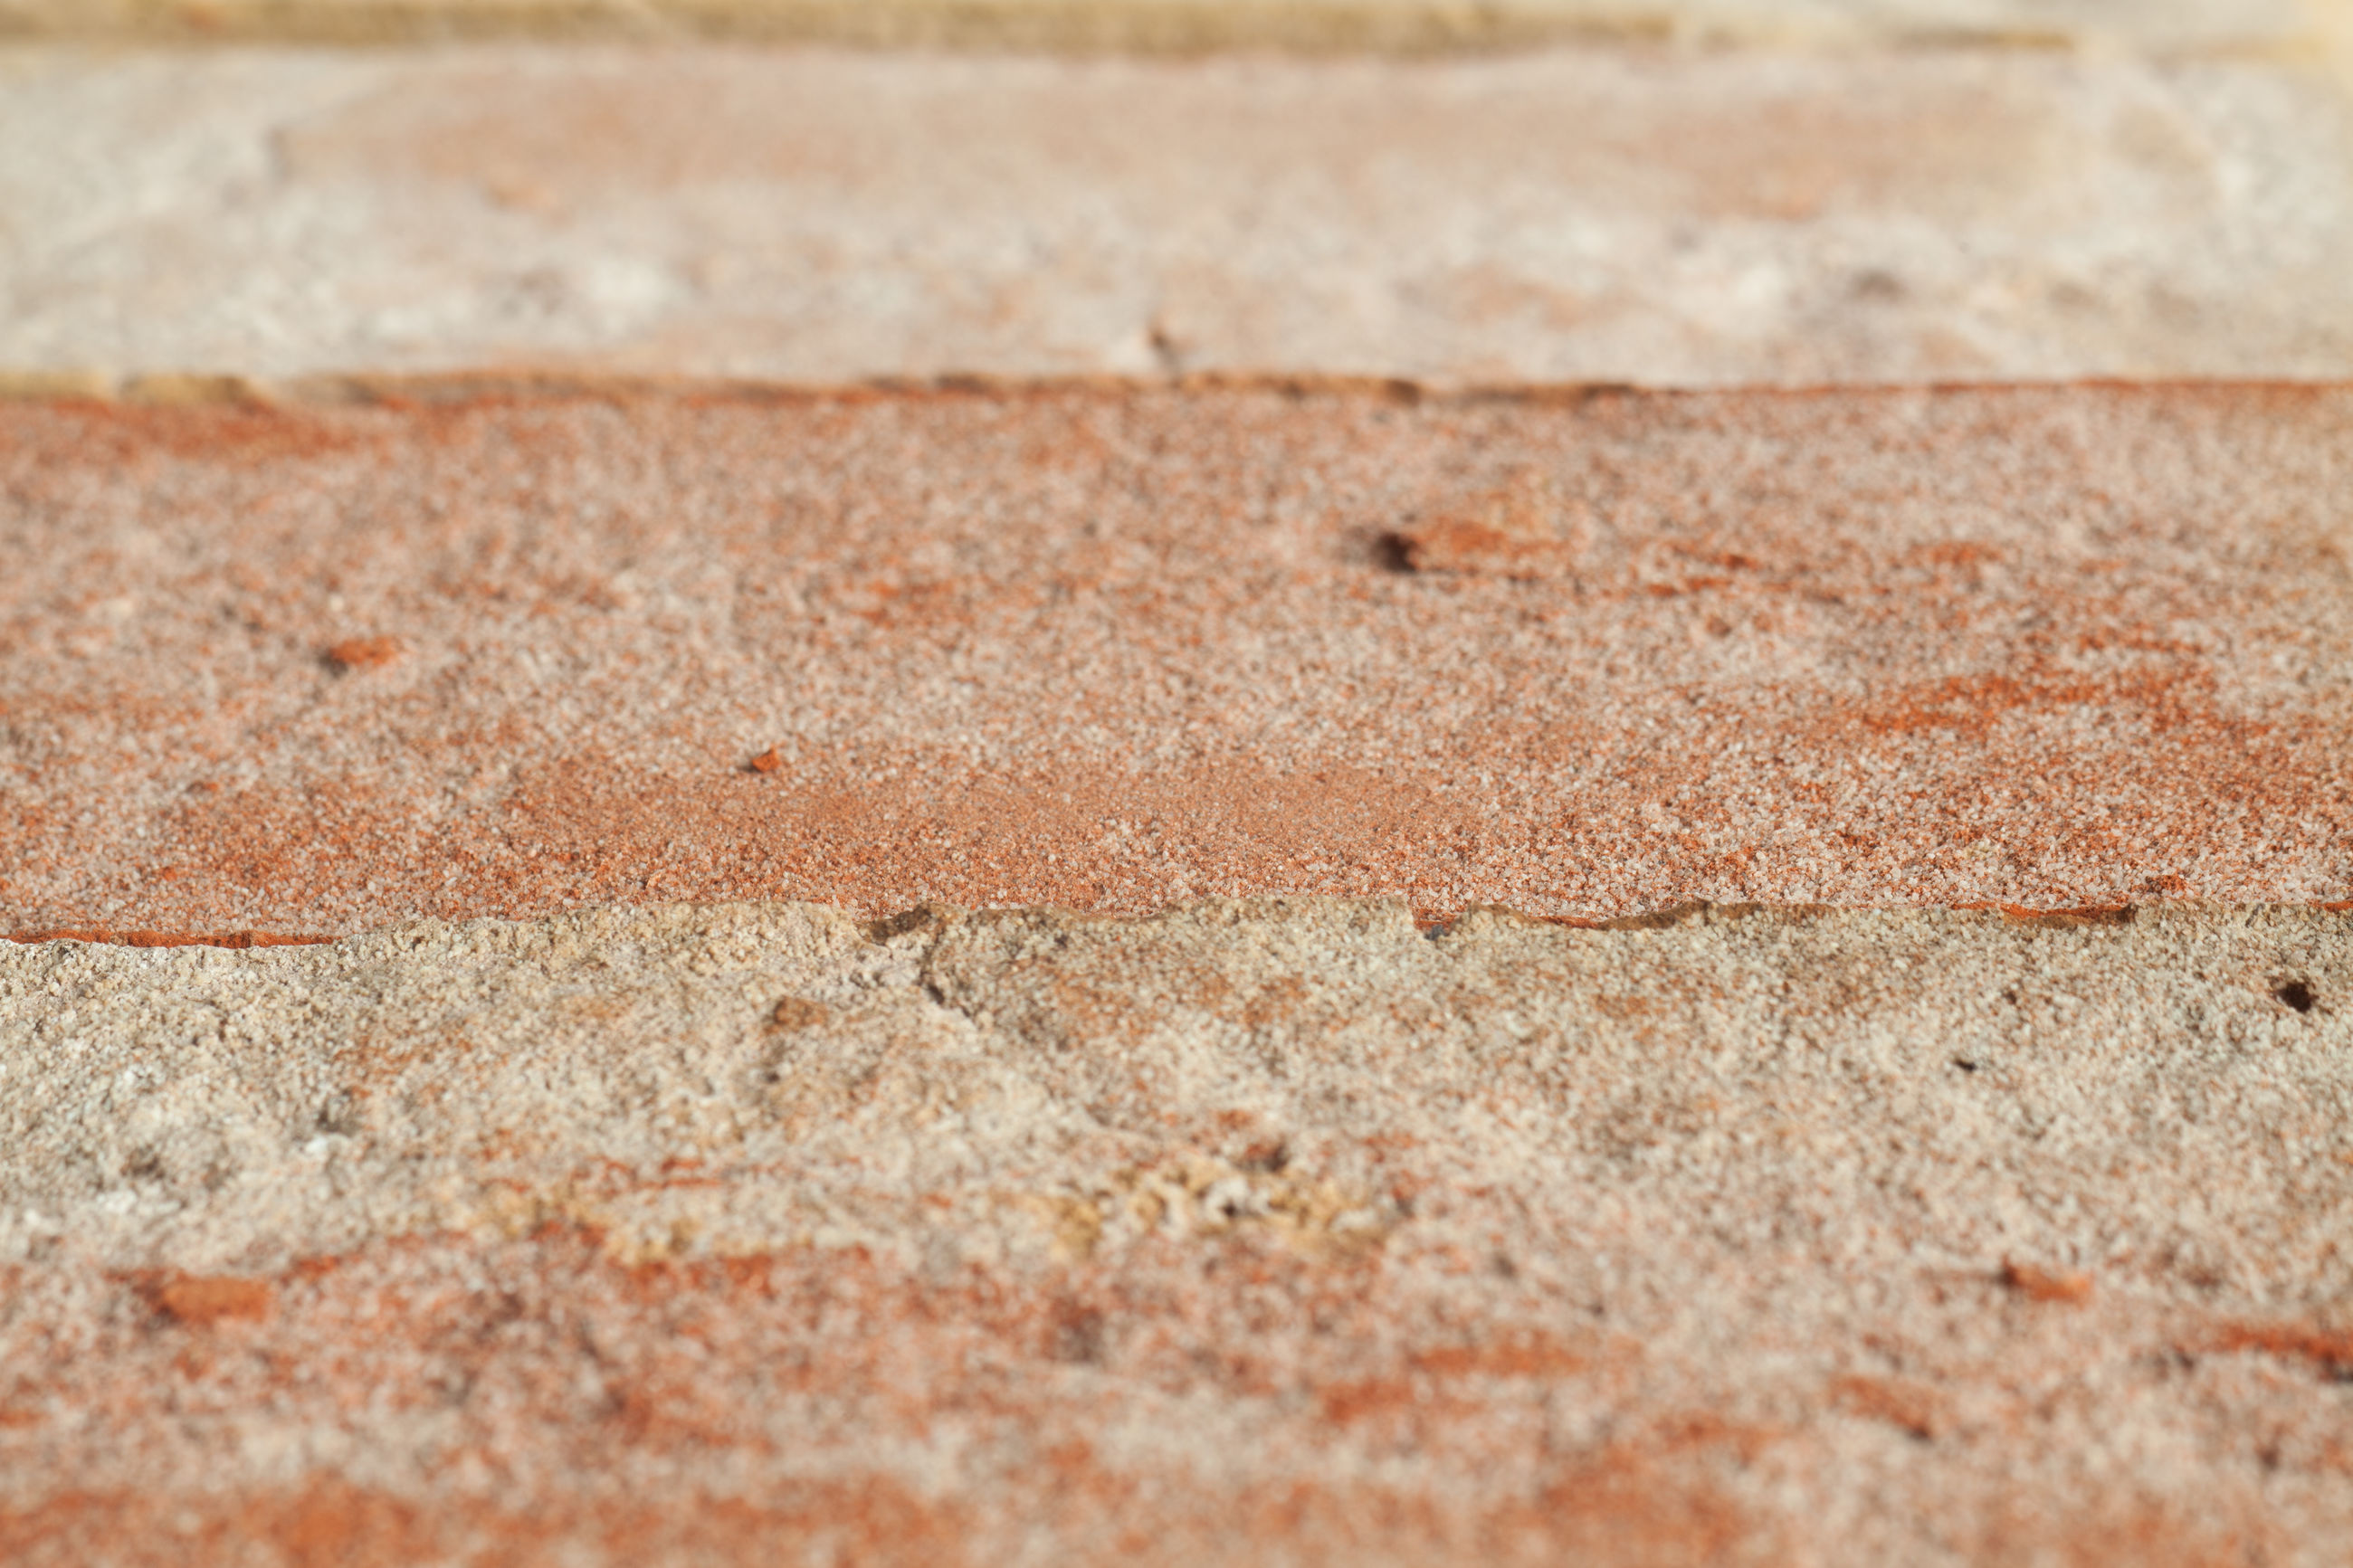 textured, backgrounds, no people, full frame, close-up, selective focus, pattern, day, brown, outdoors, rough, sand, high angle view, land, wall - building feature, surface level, flooring, concrete, built structure, wall